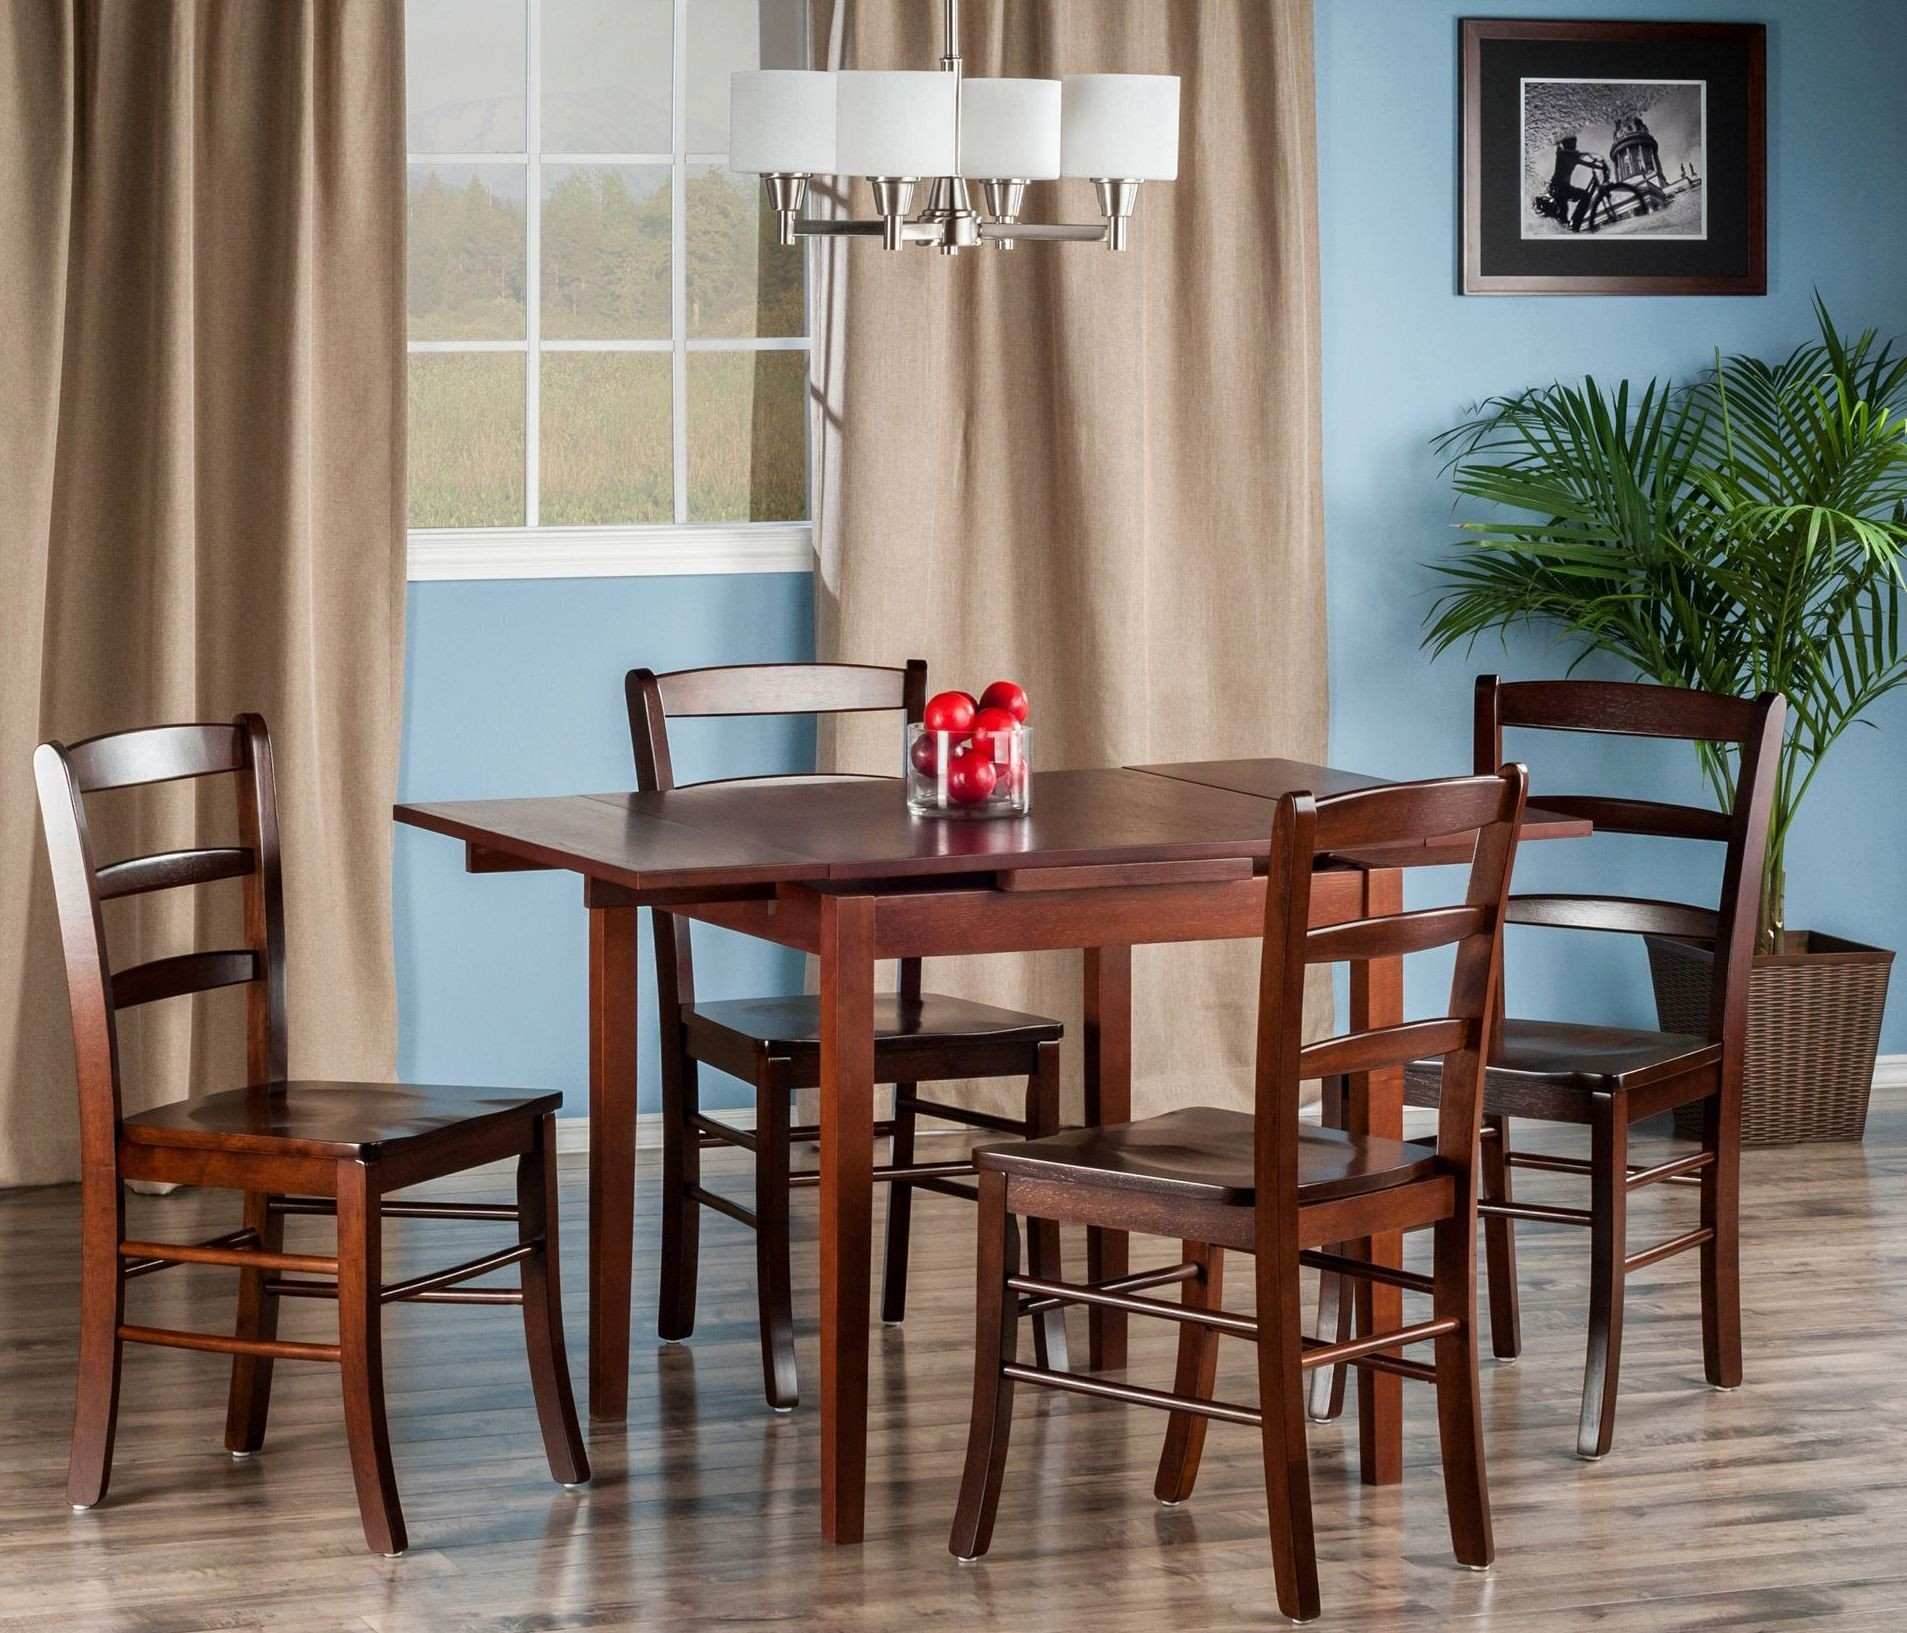 Pulman 5 piece extendable dining room set from winsomewood coleman furniture - Extending dining room sets ...